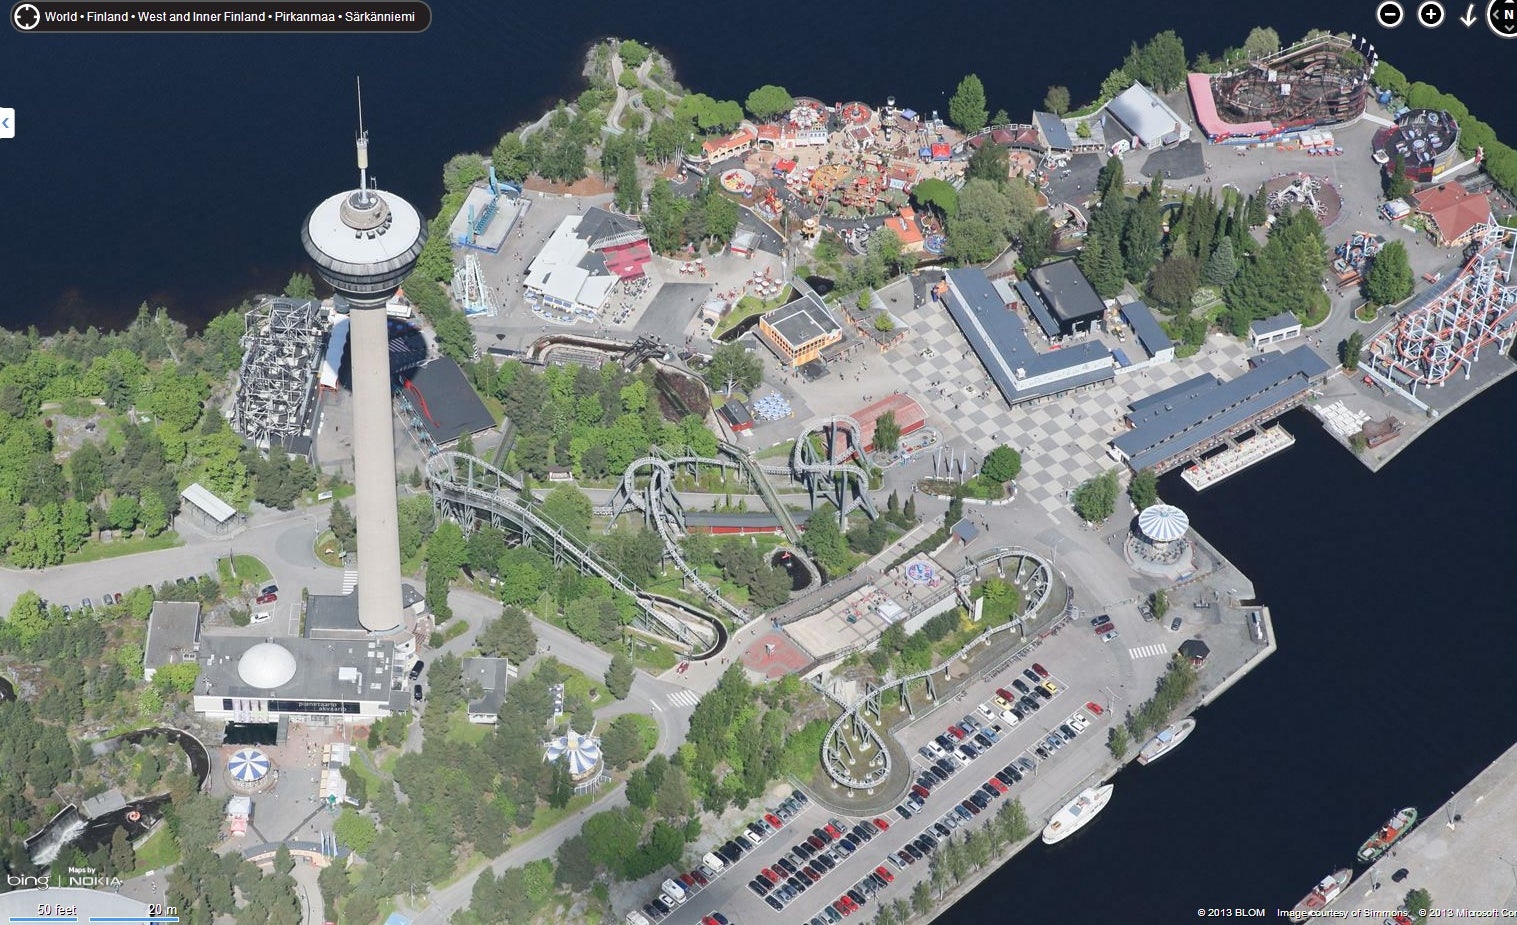 bing increases birds eye data significantly in update to bing maps pcworld